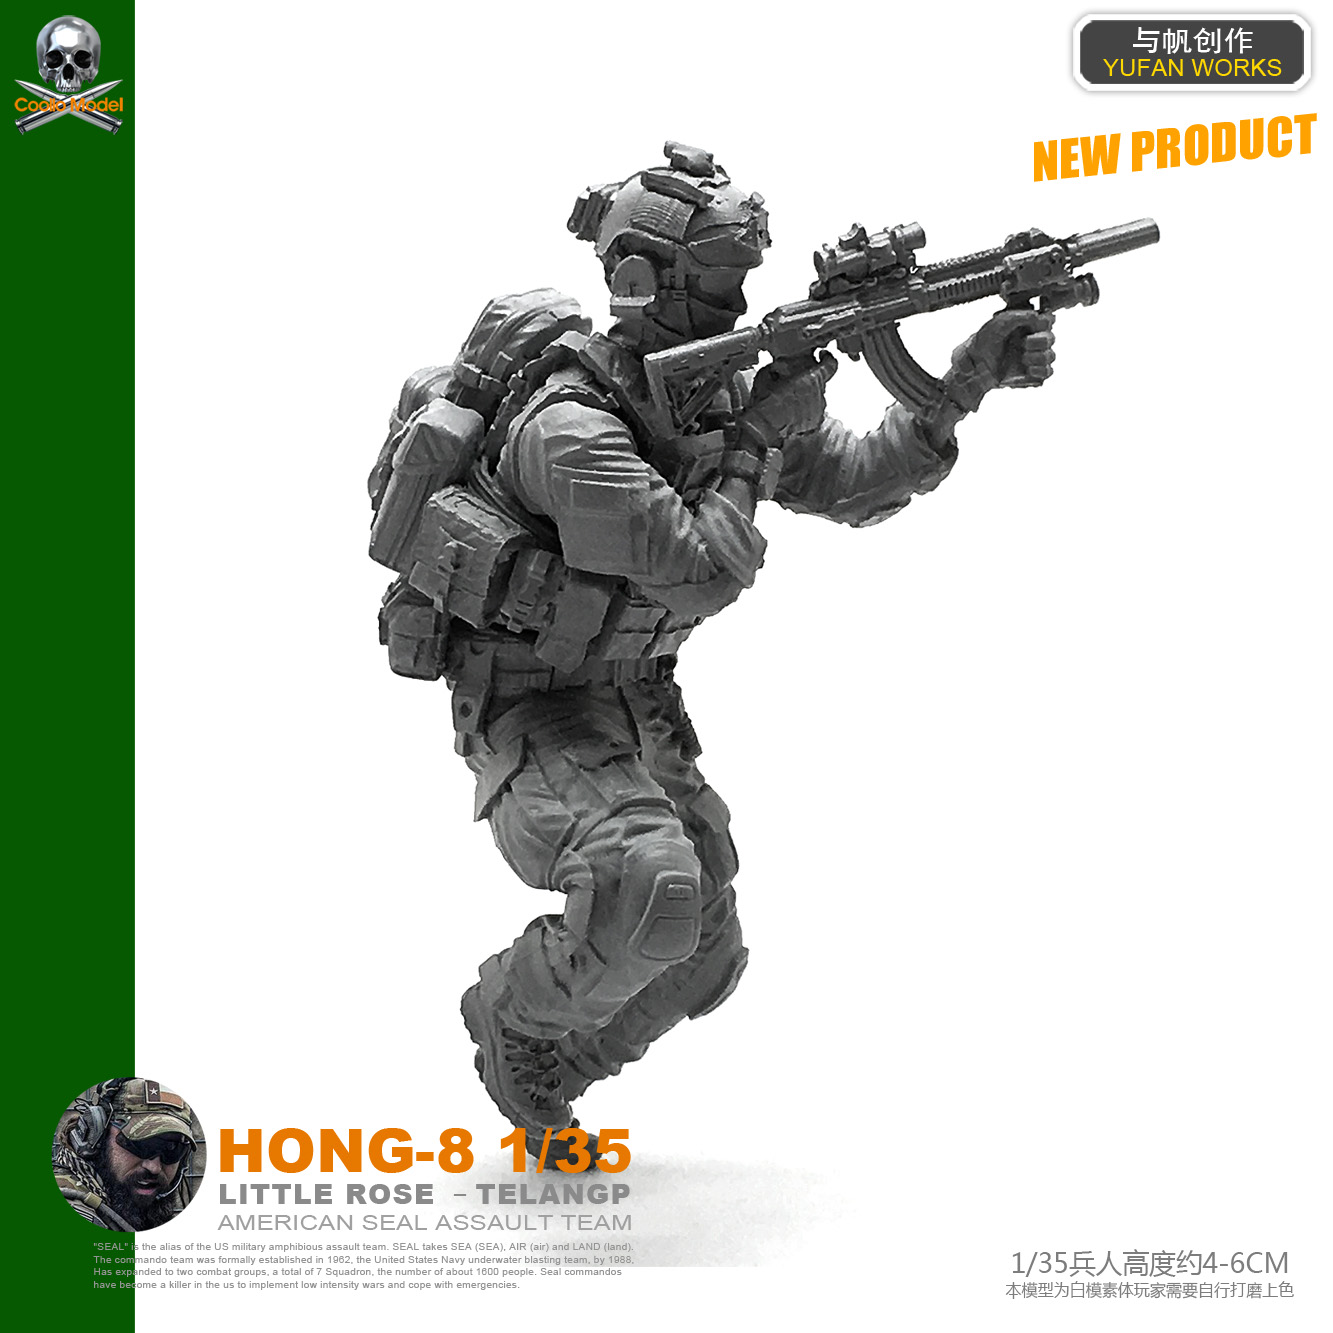 Yufan Model 1/35 Figure Resin Soldier  Model Kits Unmounted Hong-08